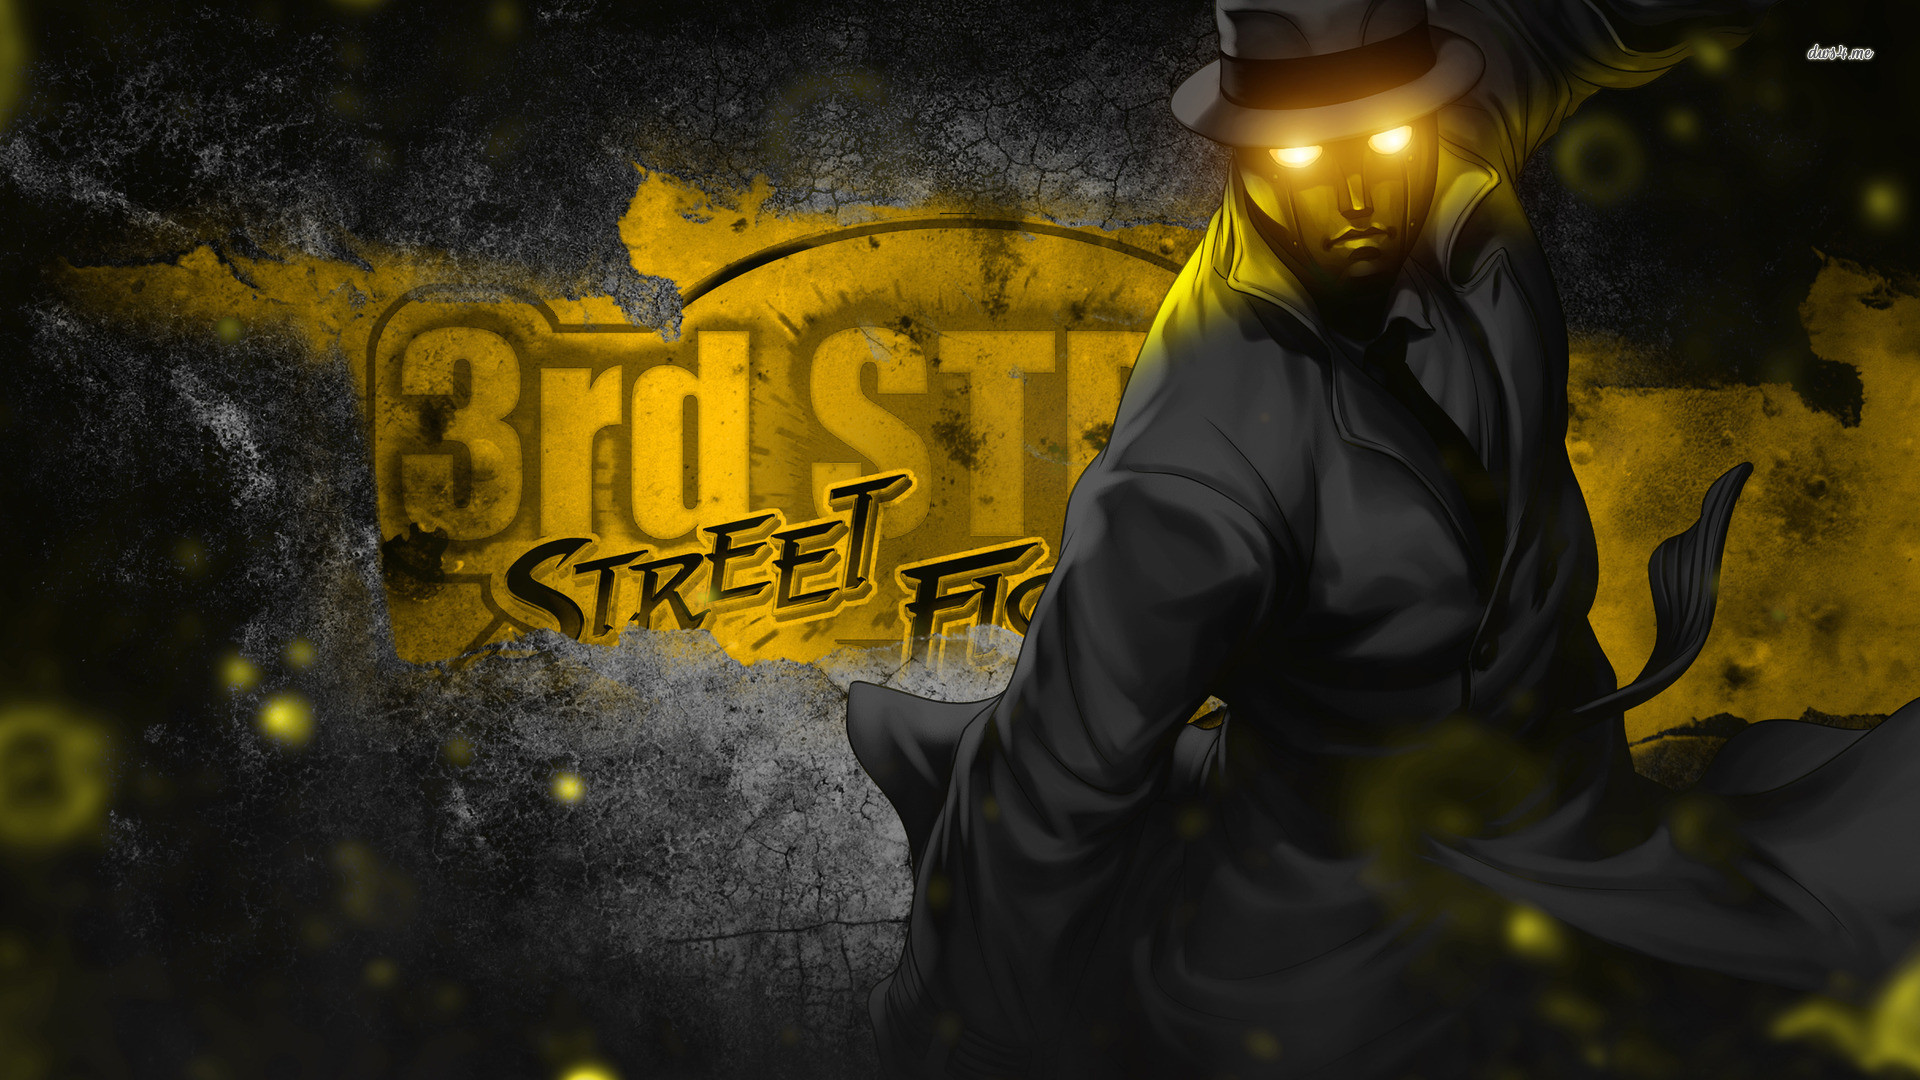 Res: 1920x1080, Street Fighter III - 3rd Q - Street Fighter III - 3rd Strike wallpaper -  Game wallpapers - #